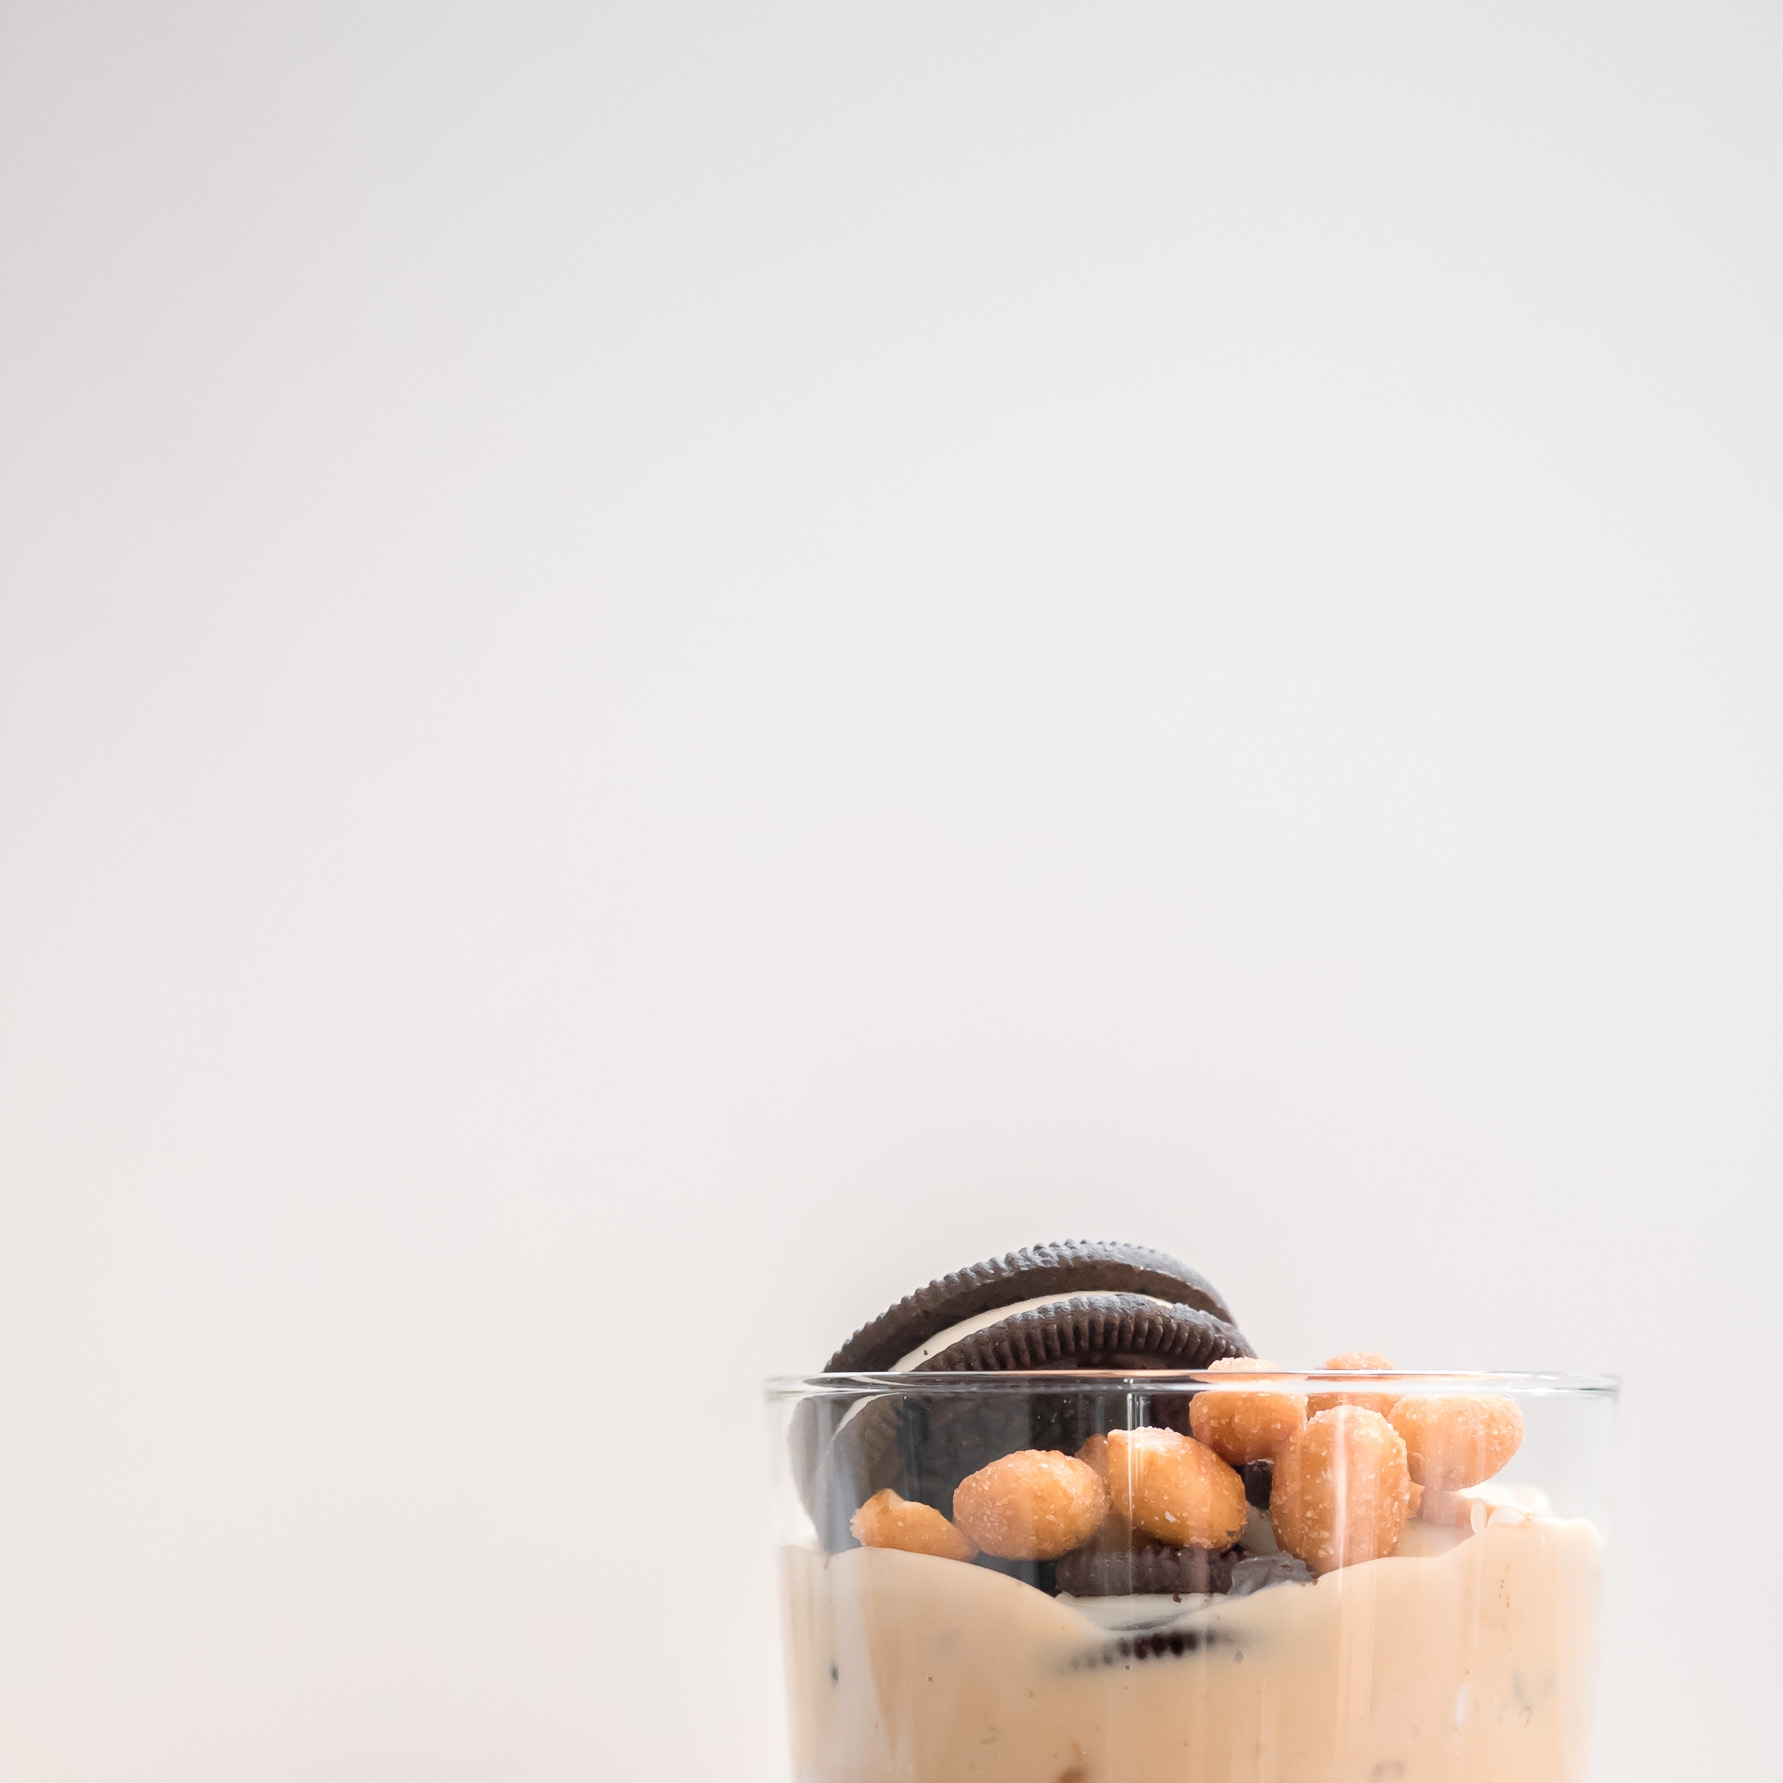 180811_Peanut Butter Pudding_0004.jpg